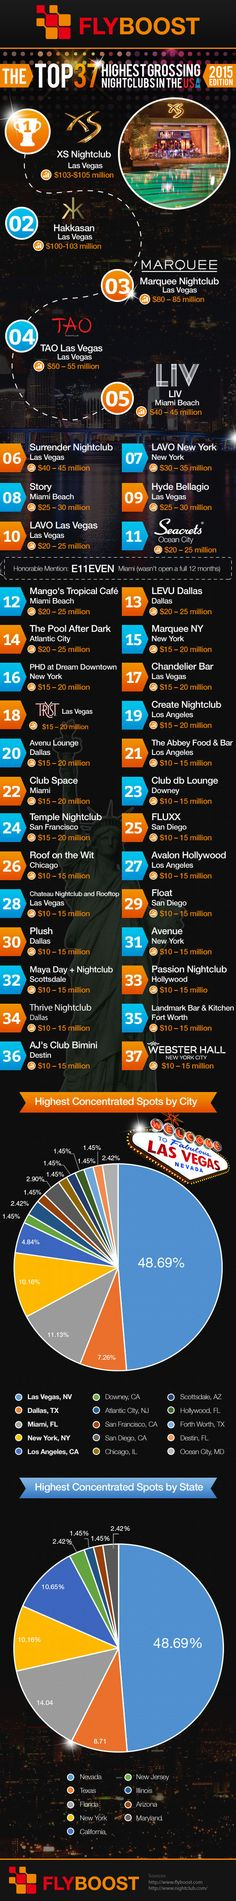 The Top 37 Highest Grossing Nightclubs In The USA – 2015 (Infographic)